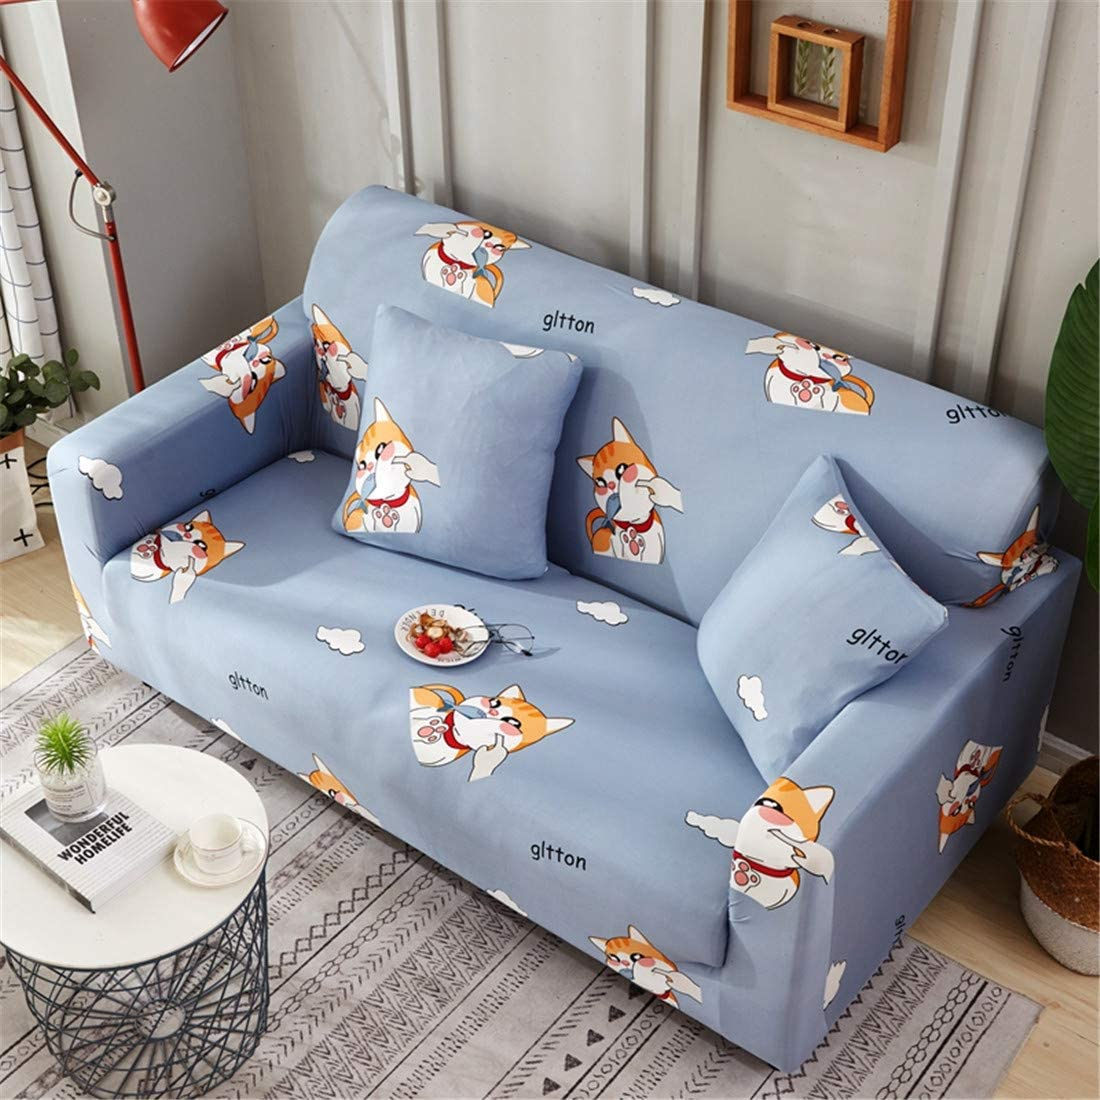 Chickwin Sofa Slipcover 1pc Pillowcase: 45 x 45 cm,Cactus Elastic Fabric Pure Color Couch Protector Slip Cover Washable Furniture Protector